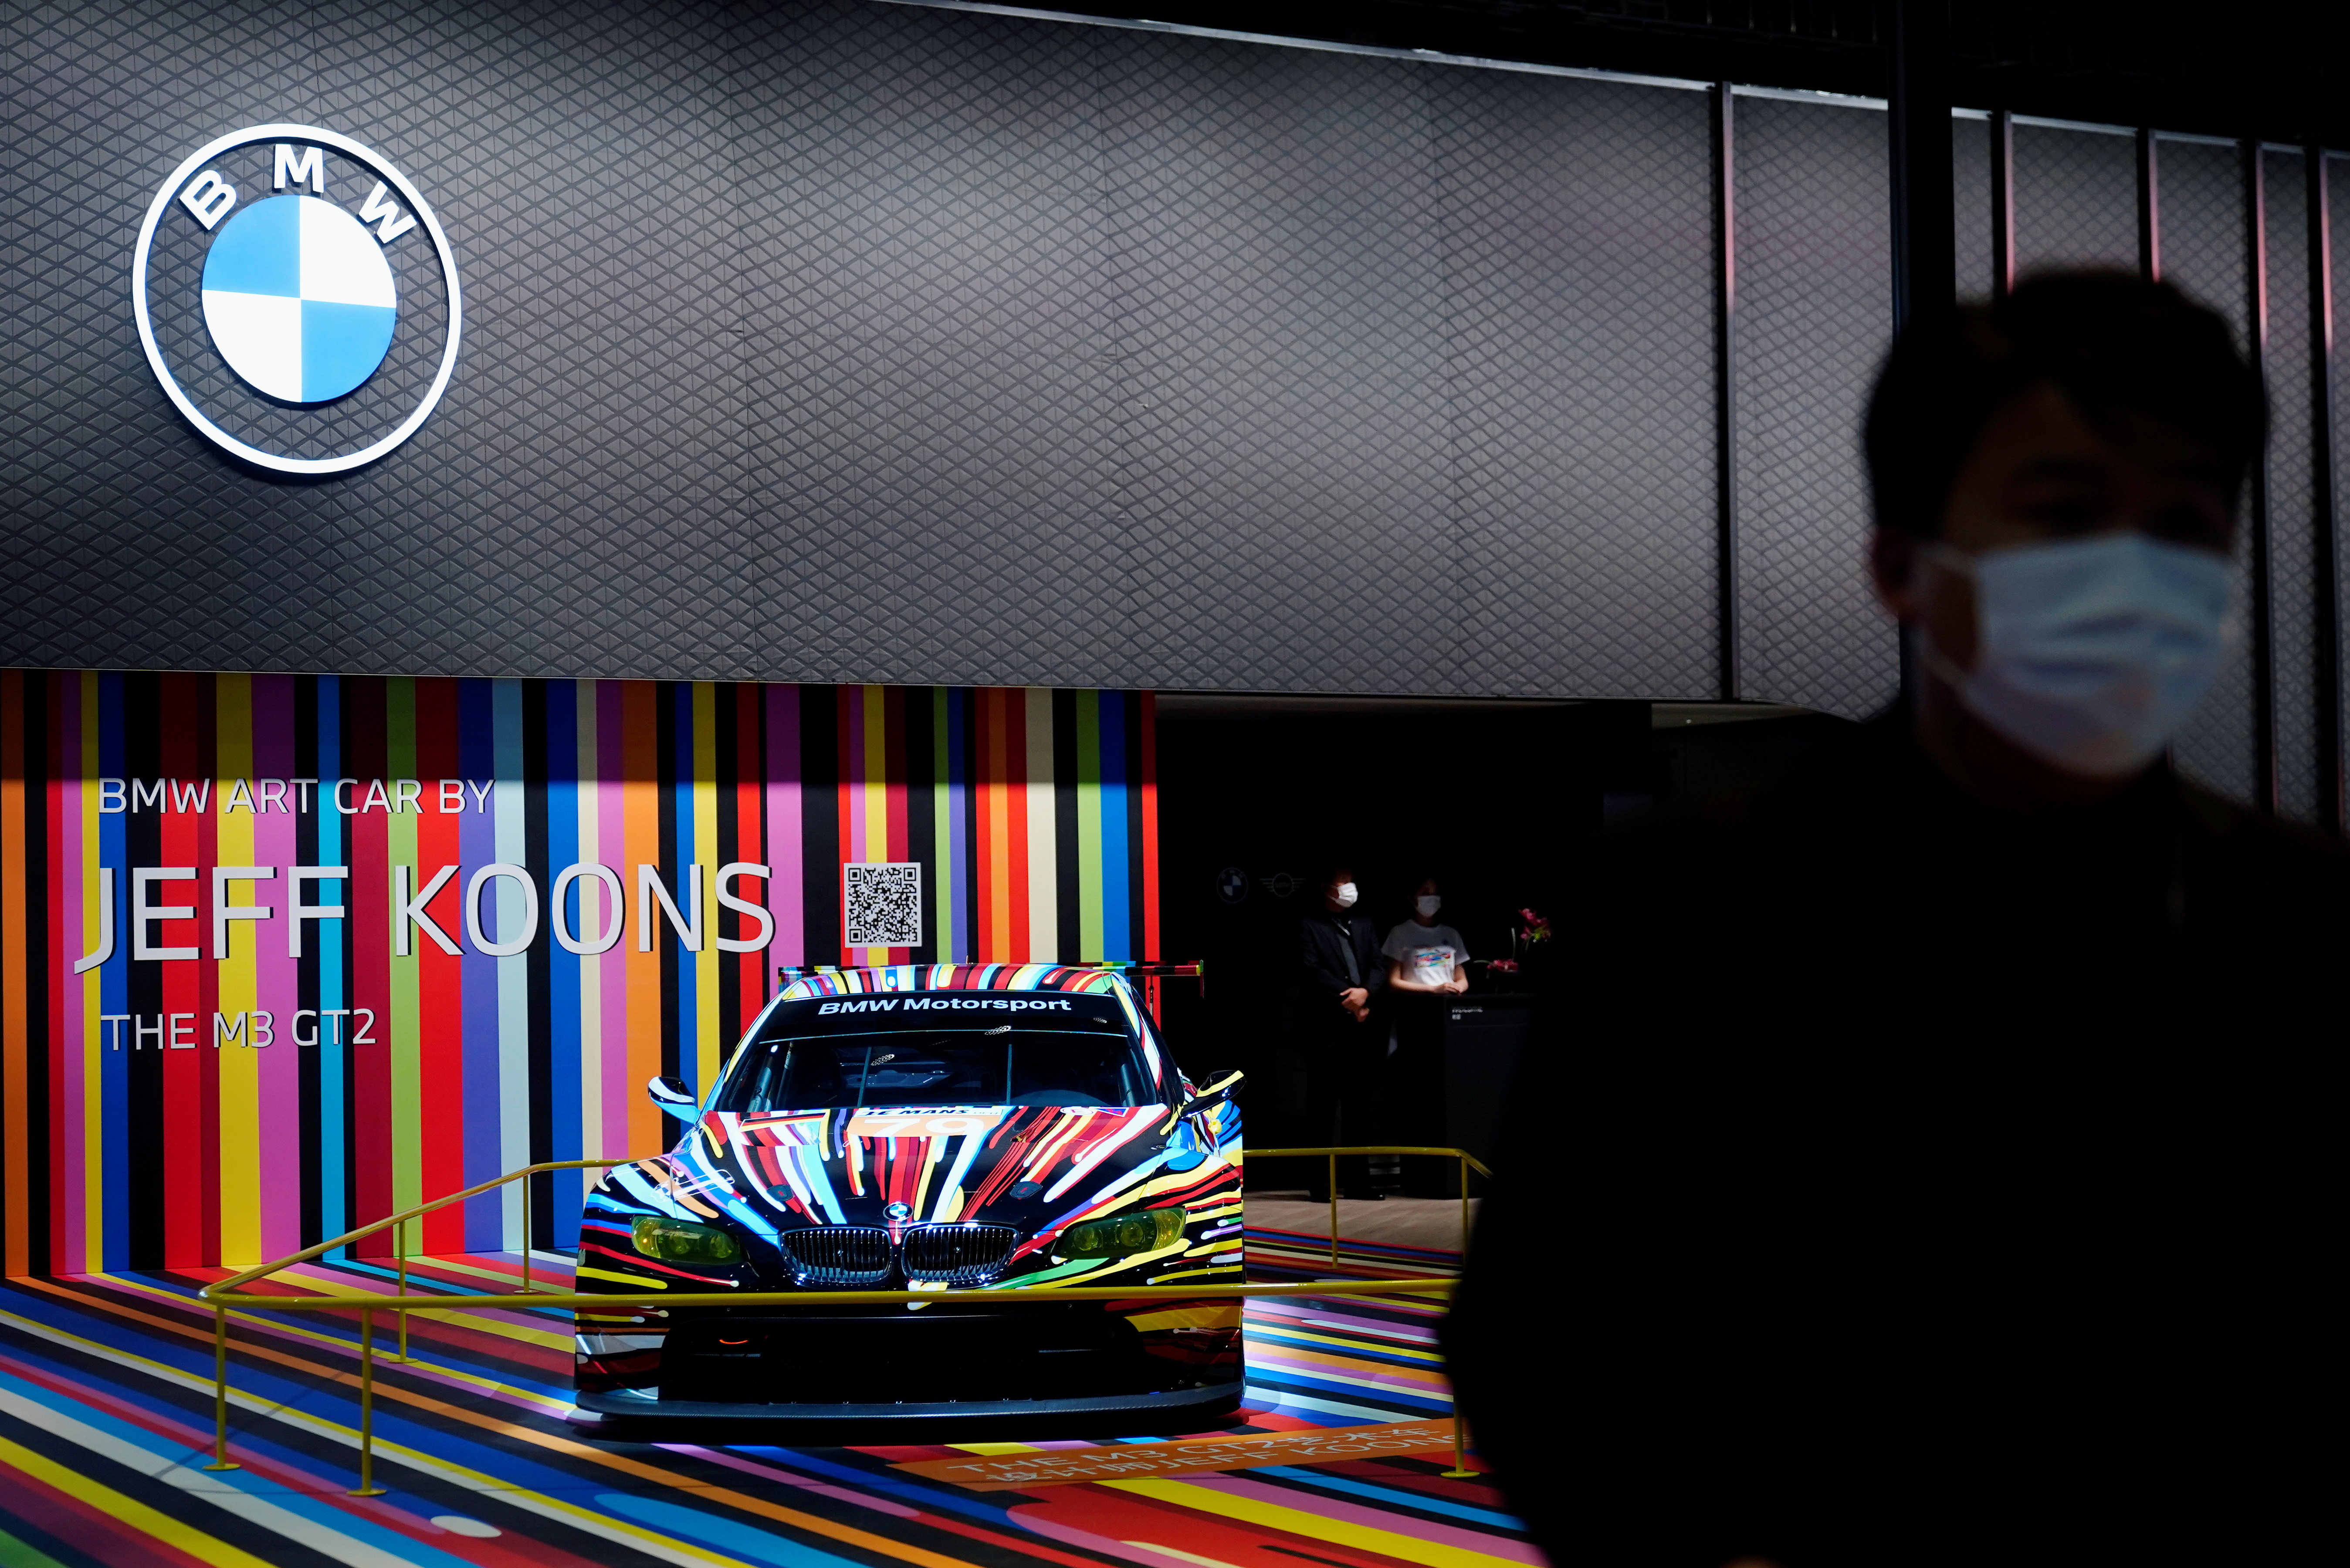 A staff member stands near a BMW M3 GT2 vehicle displayed at the BMW booth during a media day for the Auto Shanghai show in Shanghai, China April 19, 2021. REUTERS/Aly Song